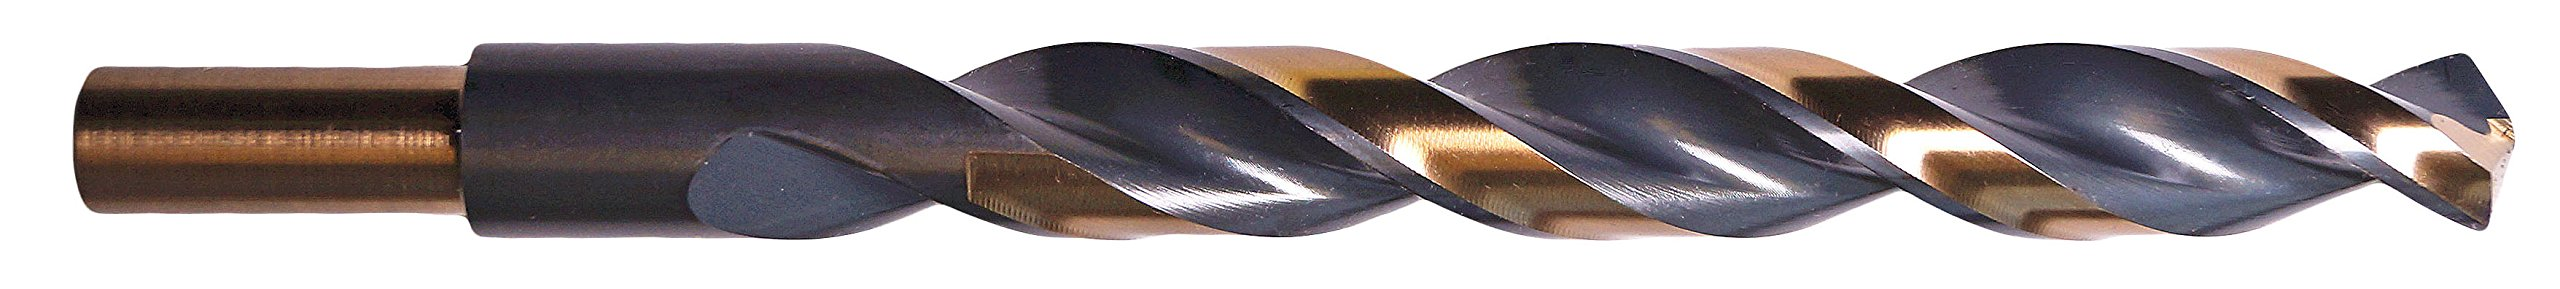 Precision Twist 344RS29/64 Drill, 3/8'' Reduced Shank High Speed Steel Drill, 0.45'' Cutting Dia., 135 Degree Cutting Angle, Right Cutting, 5.5/8'' L, Split Point Black and Bronze Coating